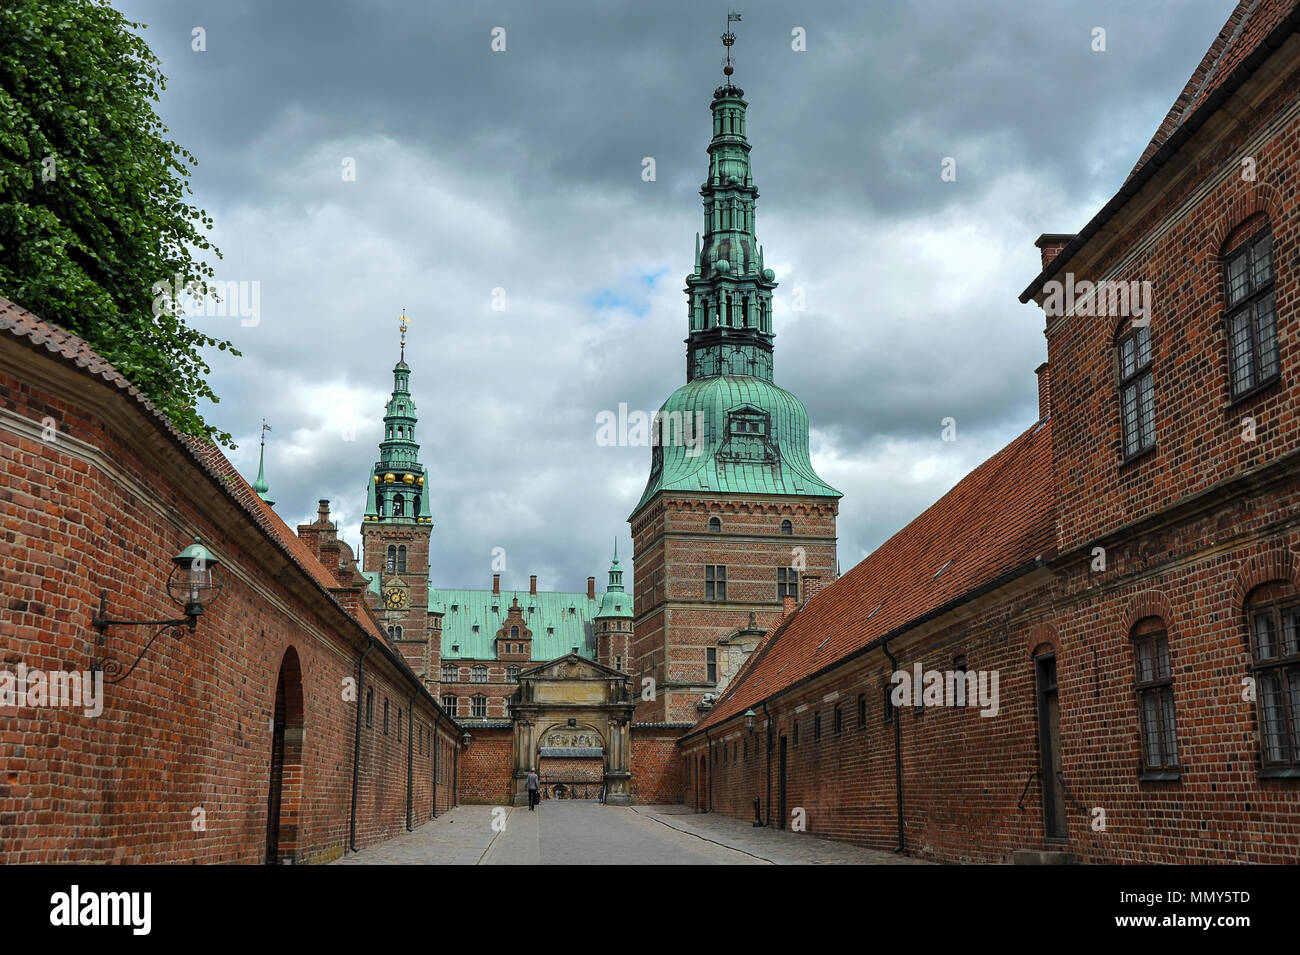 Entrance to Frederiksborg  Castle, Hillerod, Denmark.  Red brick building,  striking green towers and a stormy sky background - Stock Image